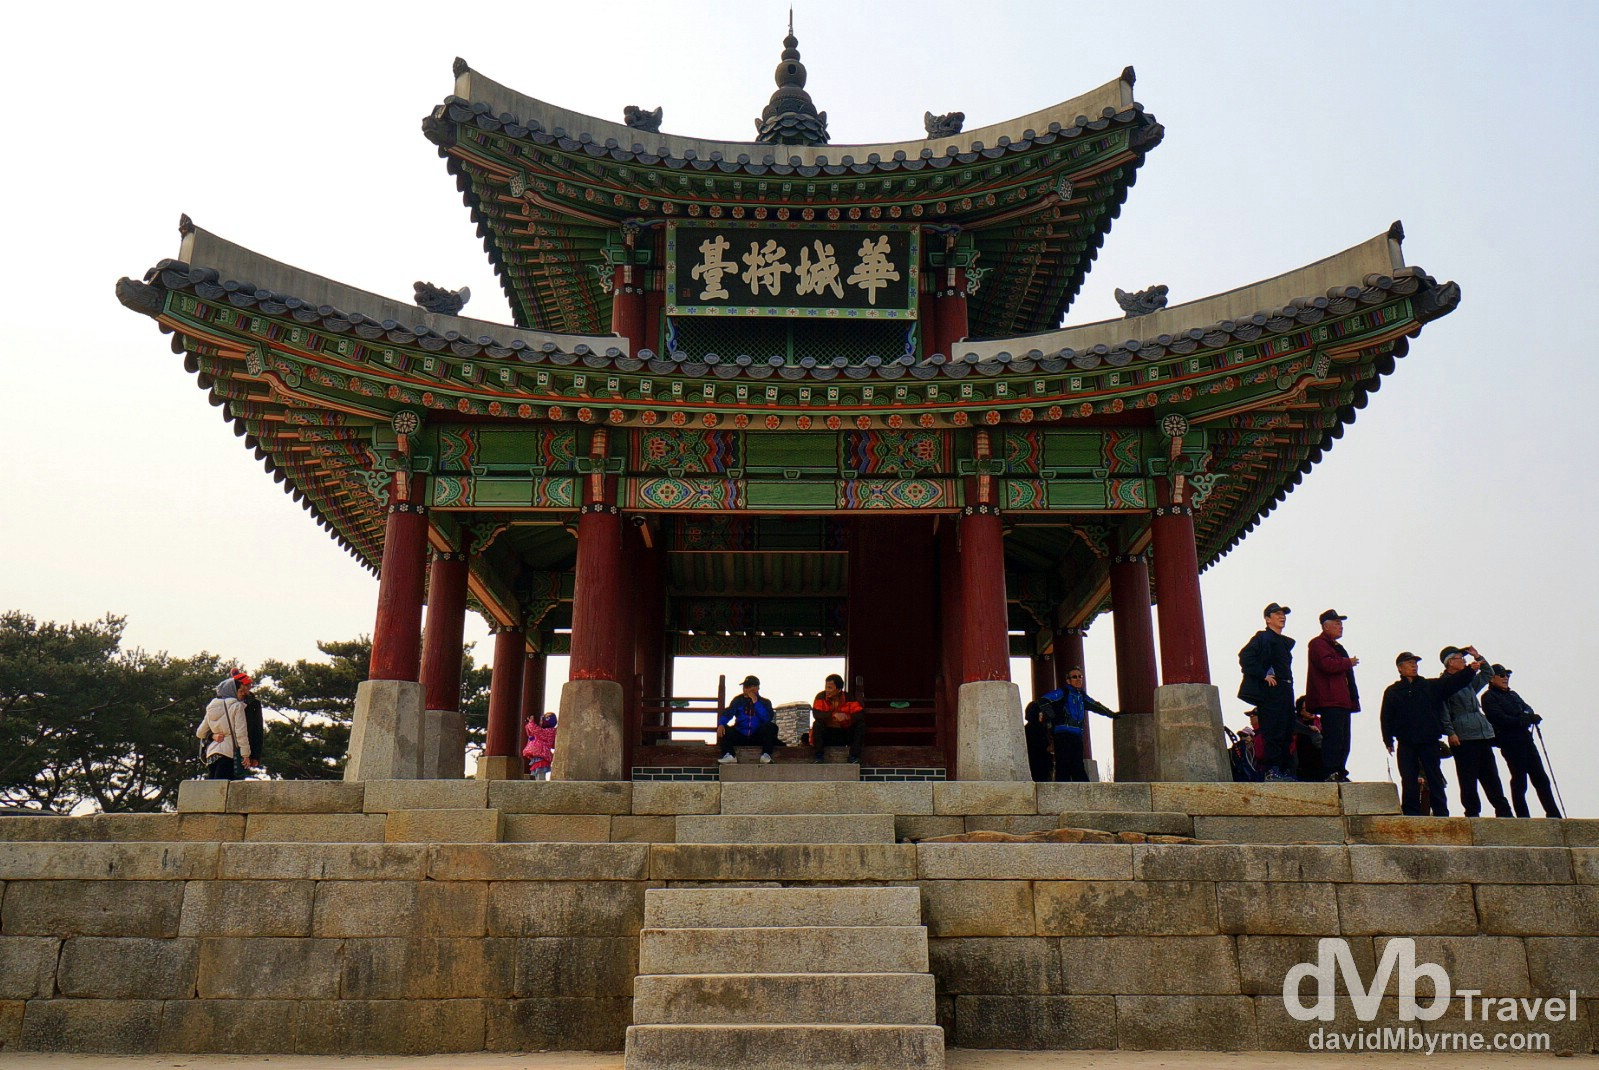 Suwon Hwaseong Fortress, South Korea